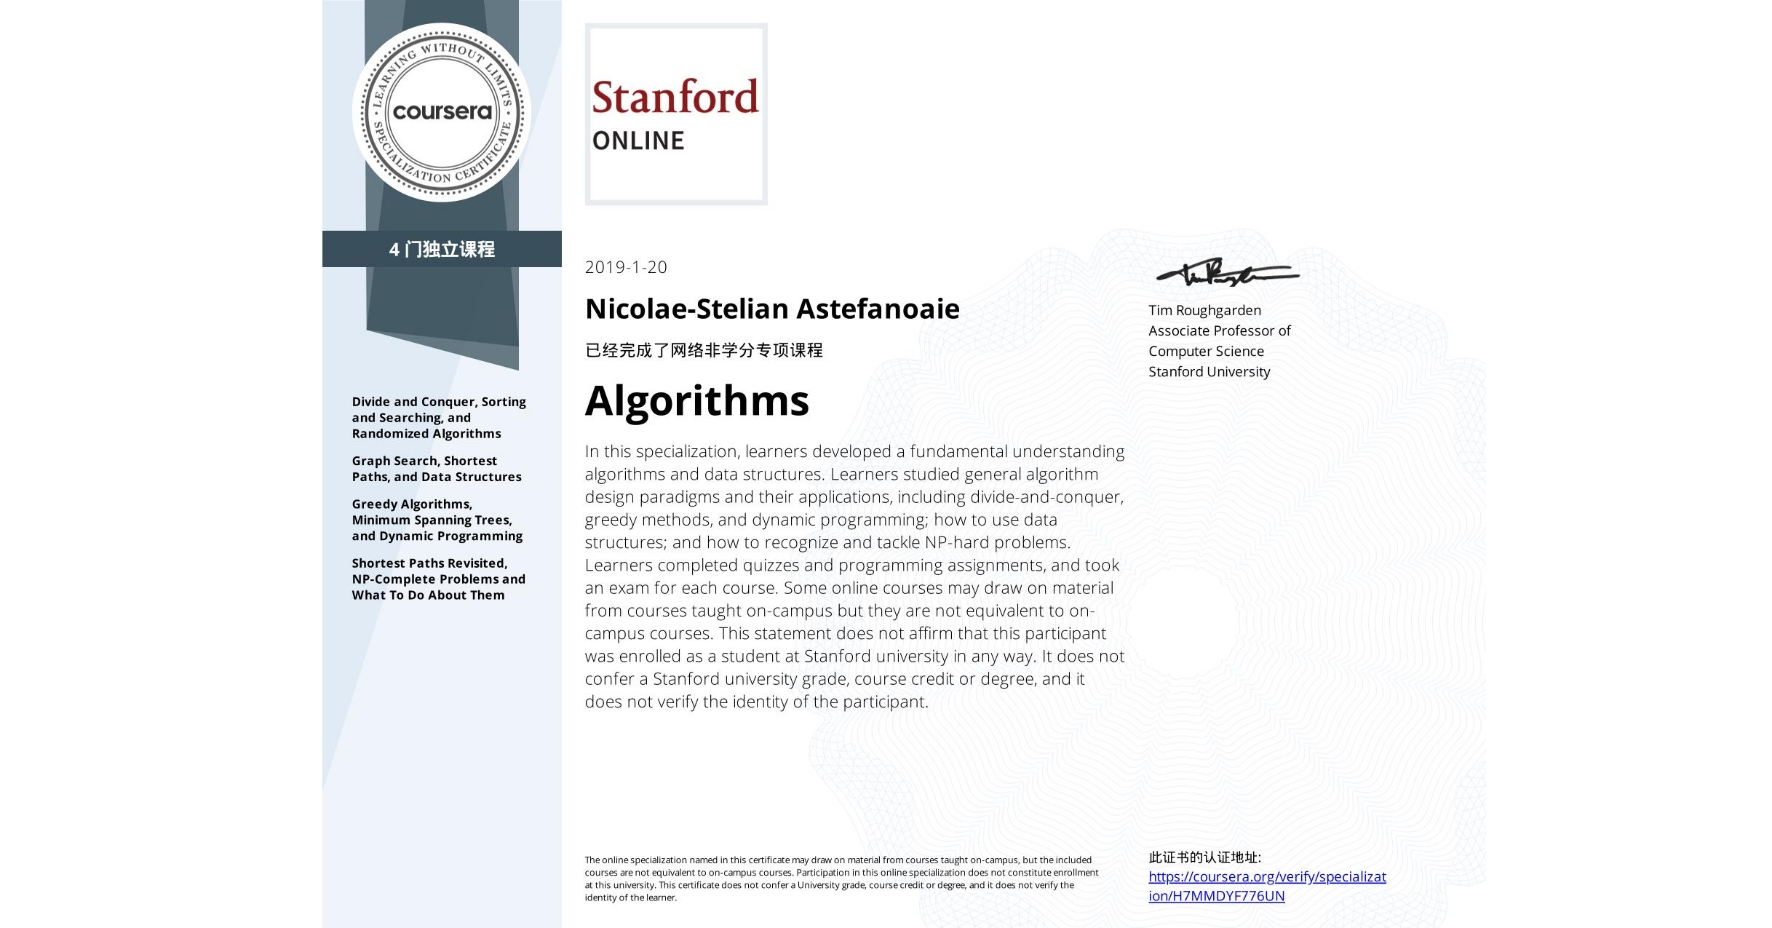 View certificate for Nicolae-Stelian Astefanoaie, Algorithms, offered through Coursera. In this specialization, learners developed a fundamental understanding algorithms and data structures. Learners studied general algorithm design paradigms and their applications, including divide-and-conquer, greedy methods, and dynamic programming; how to use data structures; and how to recognize and tackle NP-hard problems.  Learners completed quizzes and programming assignments, and took an exam for each course.  Some online courses may draw on material from courses taught on-campus but they are not equivalent to on-campus courses. This statement does not affirm that this participant was enrolled as a student at Stanford university in any way. It does not confer a Stanford university grade, course credit or degree, and it does not verify the identity of the participant.